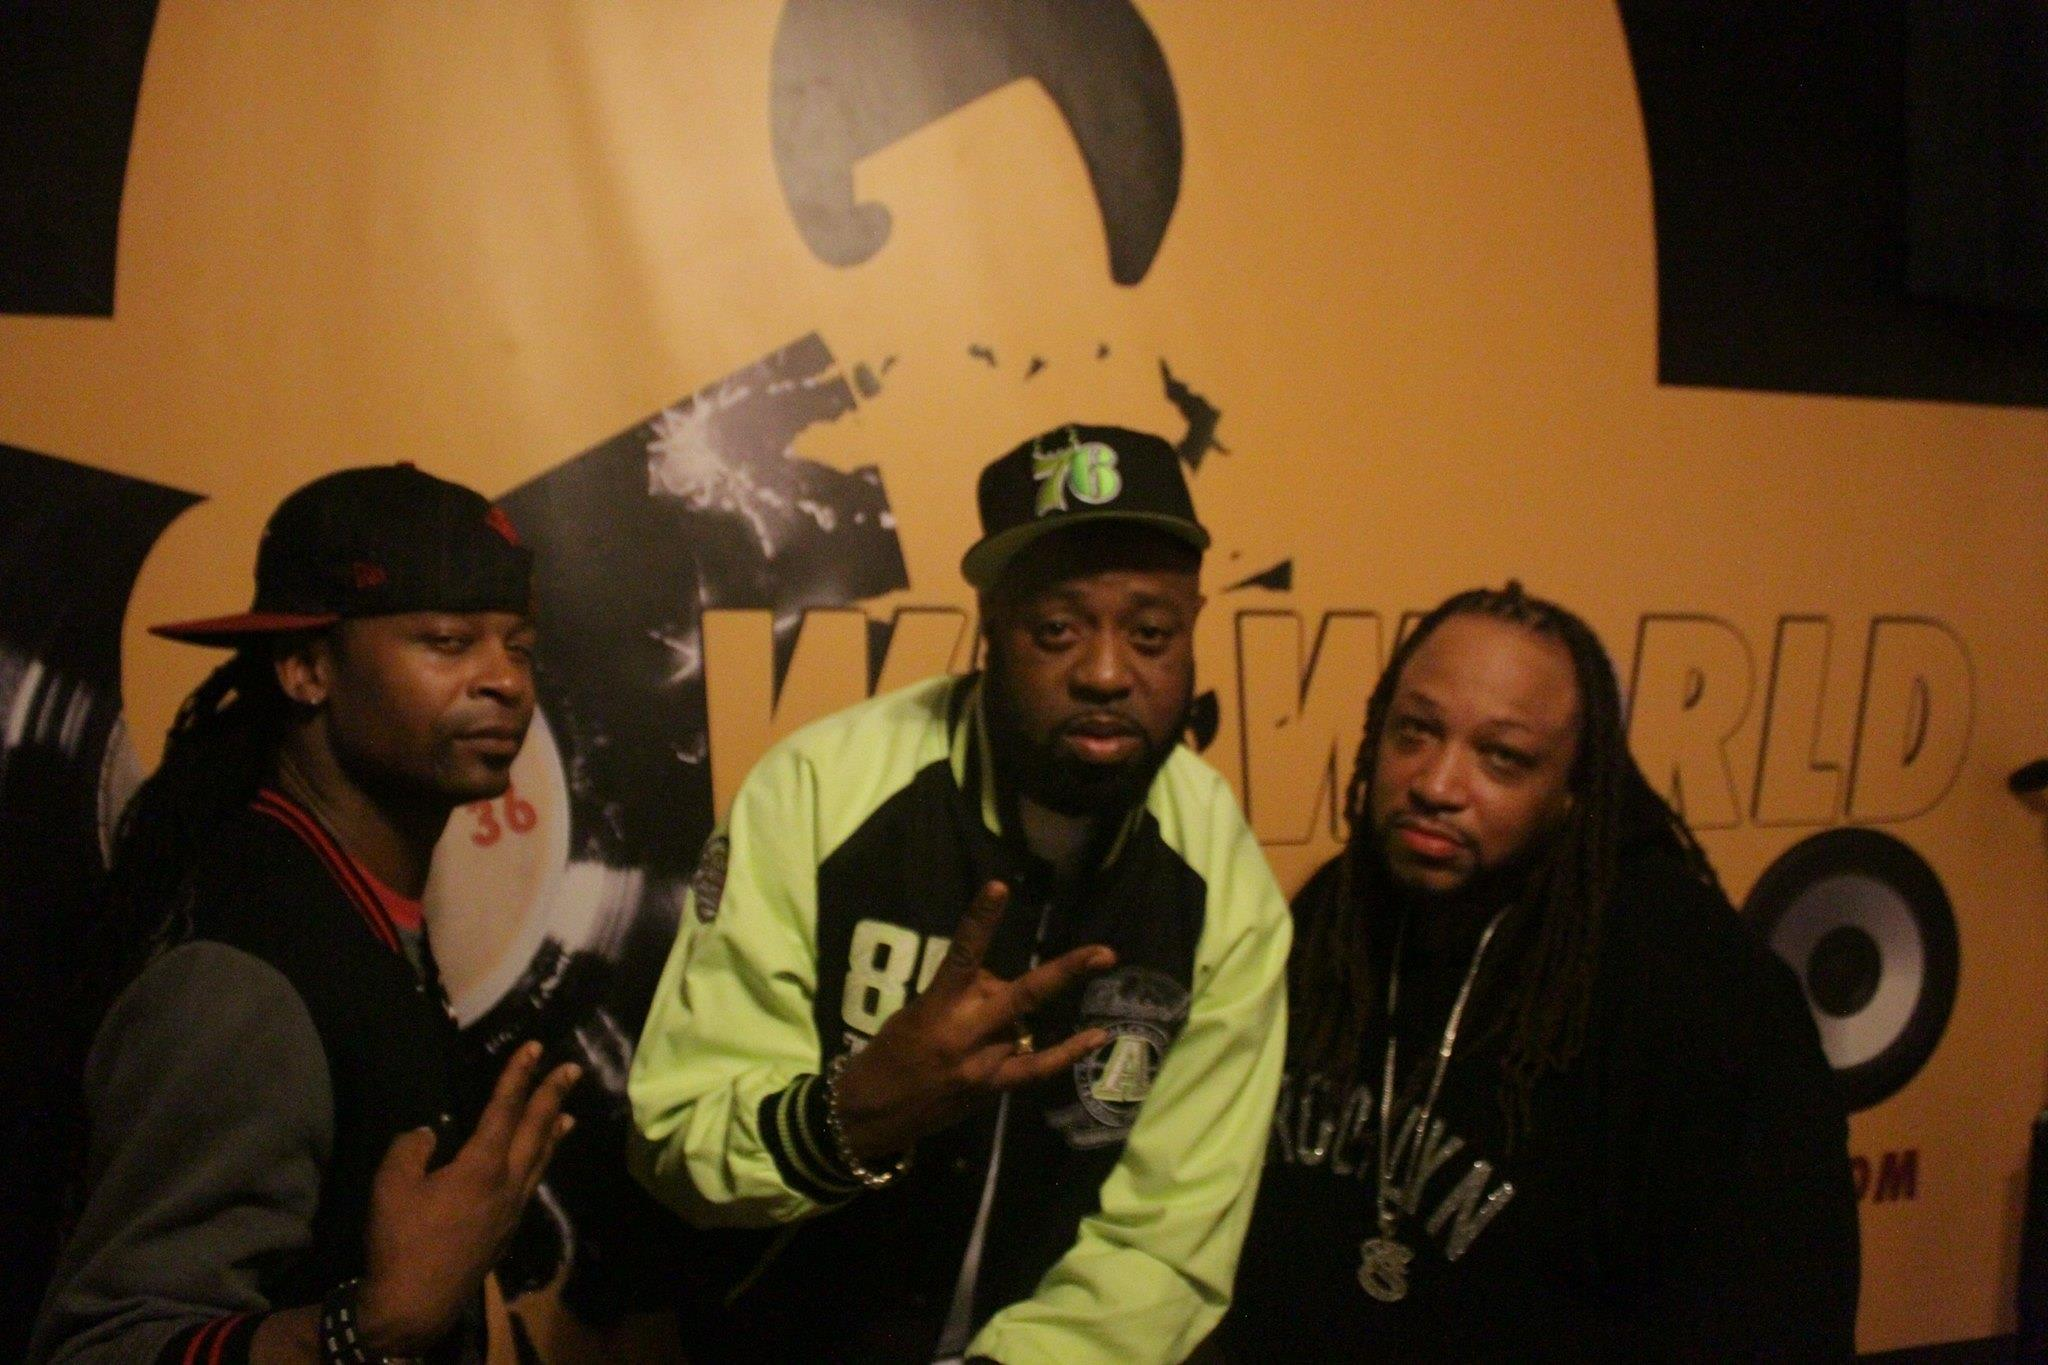 Cheef Bali , Cappadonna from the Wu Tang Clan & Big Zay